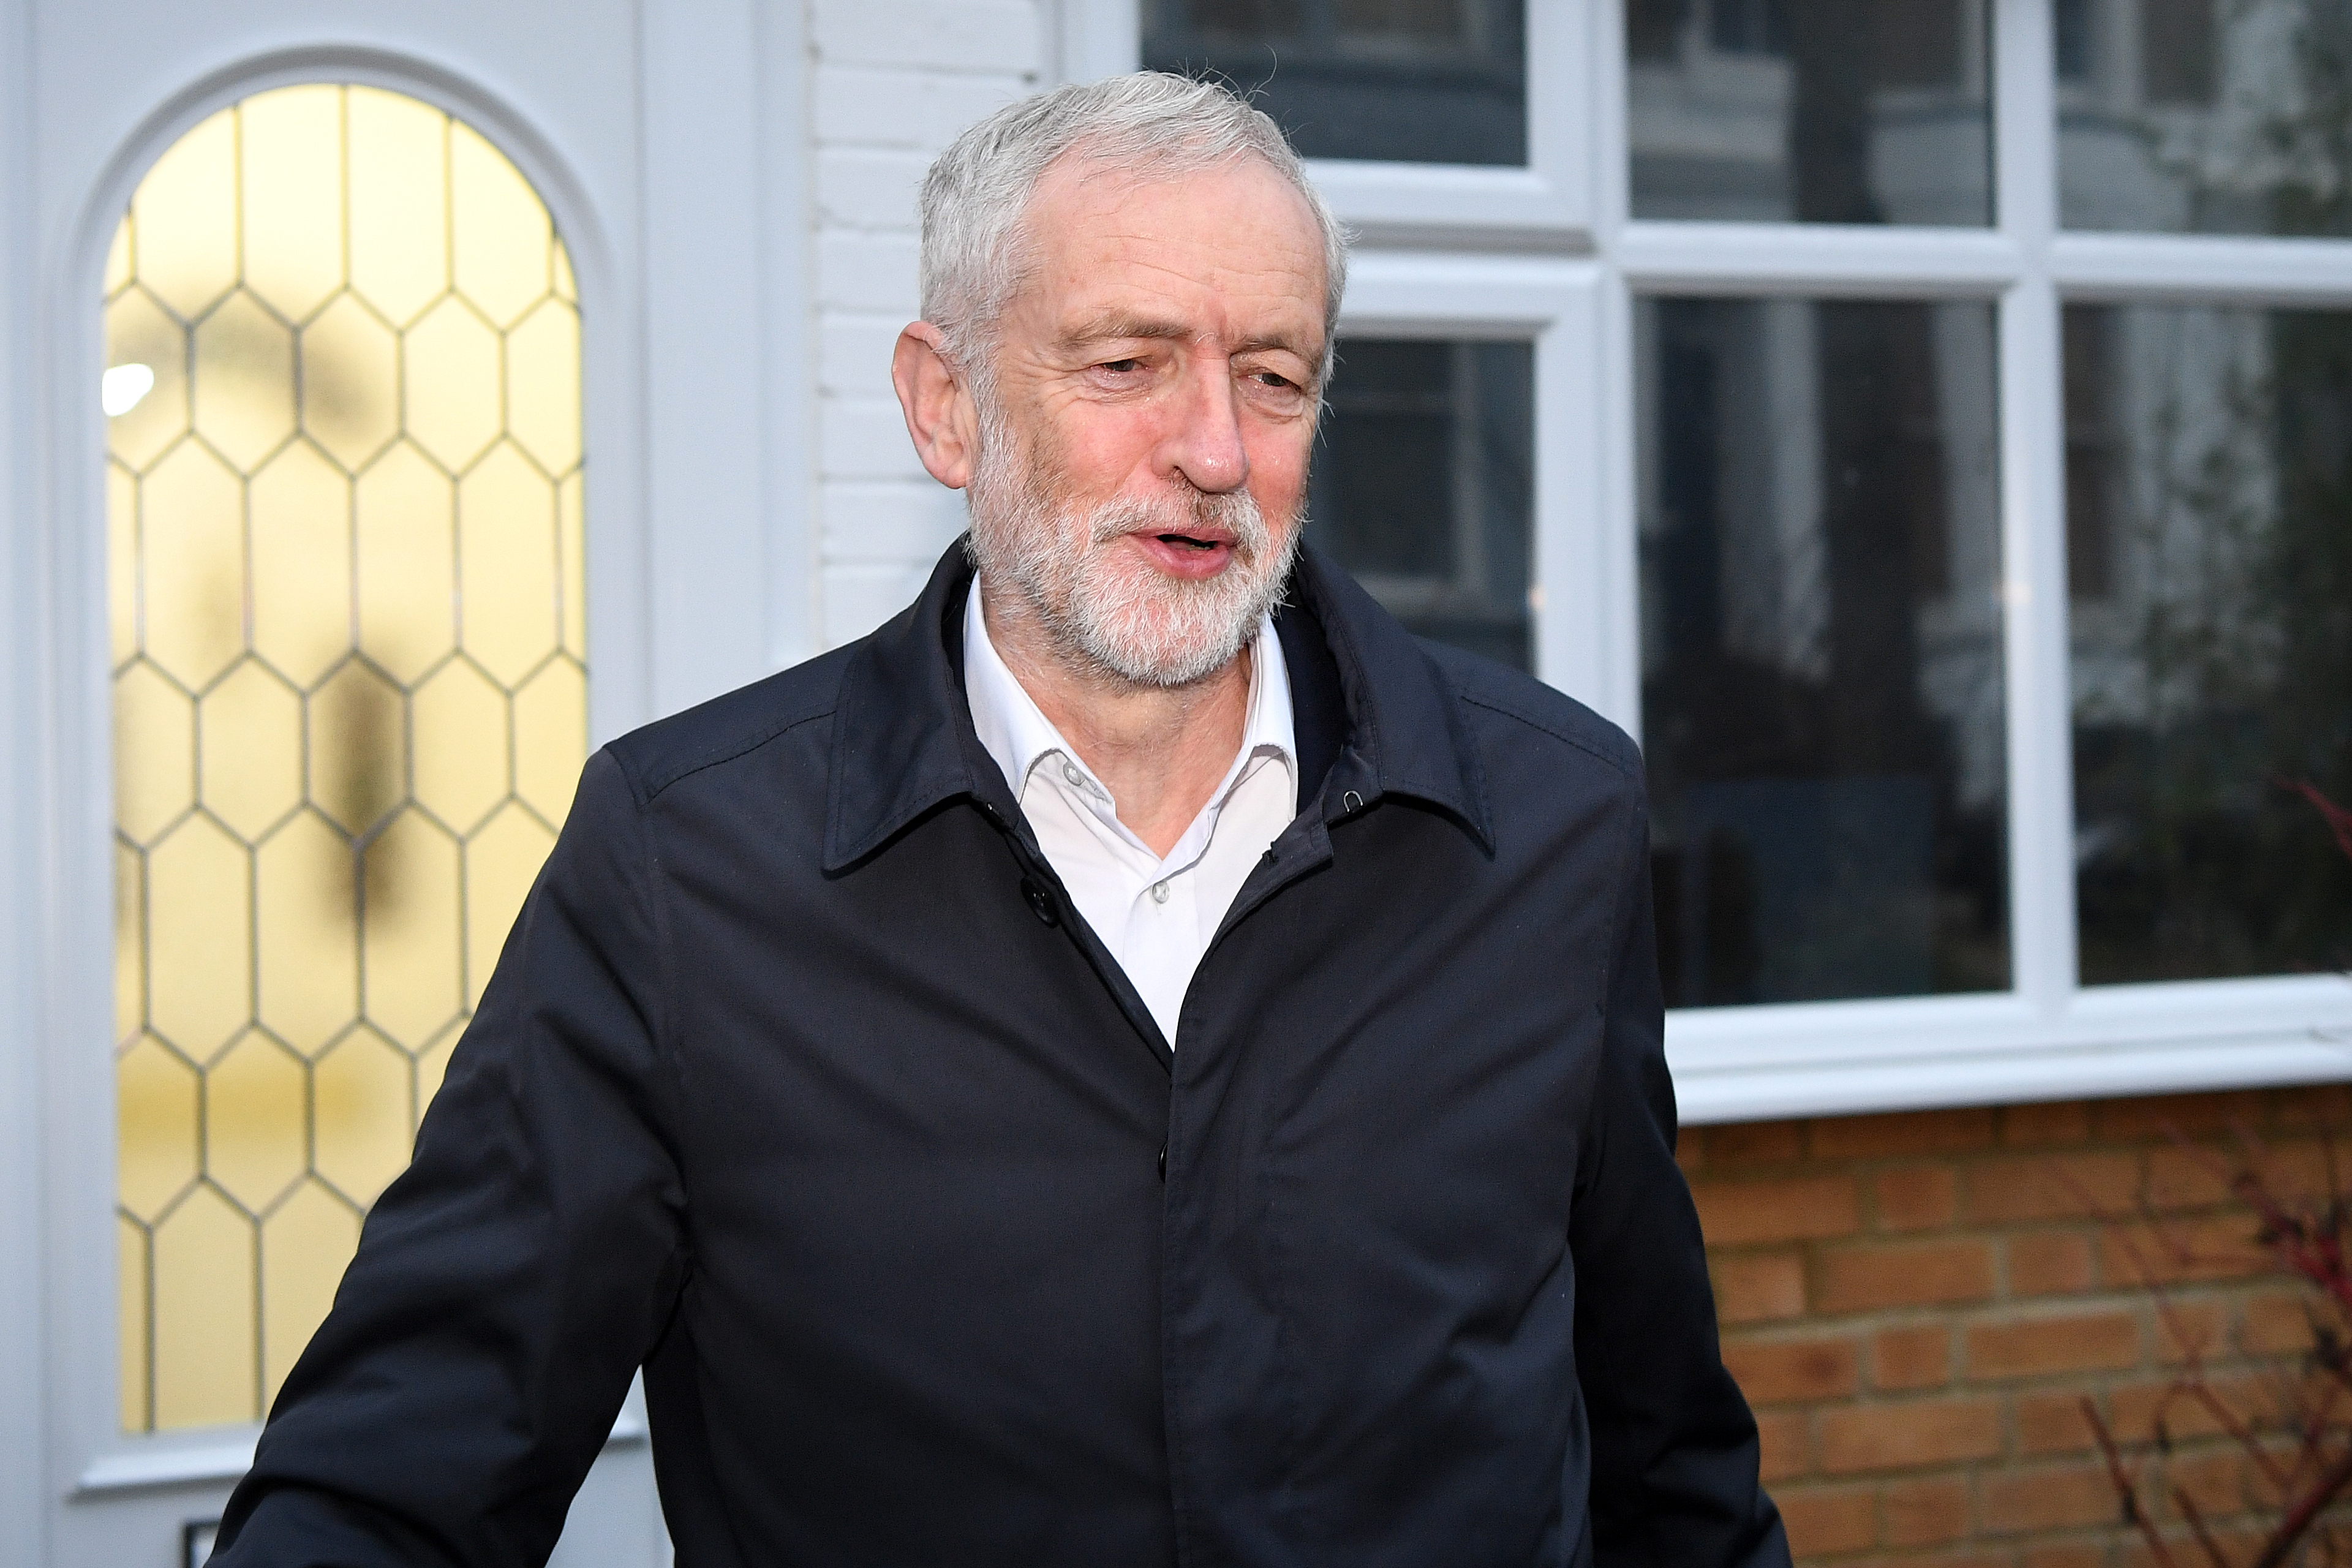 LONDON, ENGLAND - JANUARY 16: Labour Leader Jeremy Corbyn leaves his home ahead of a vote of no confidence in Government on January 16, 2019 in London, England. Parliament will hold a vote of no confidence in Government after Theresa May's Brexit deal was rejected yesterday. (Photo by Leon Neal/Getty Images)